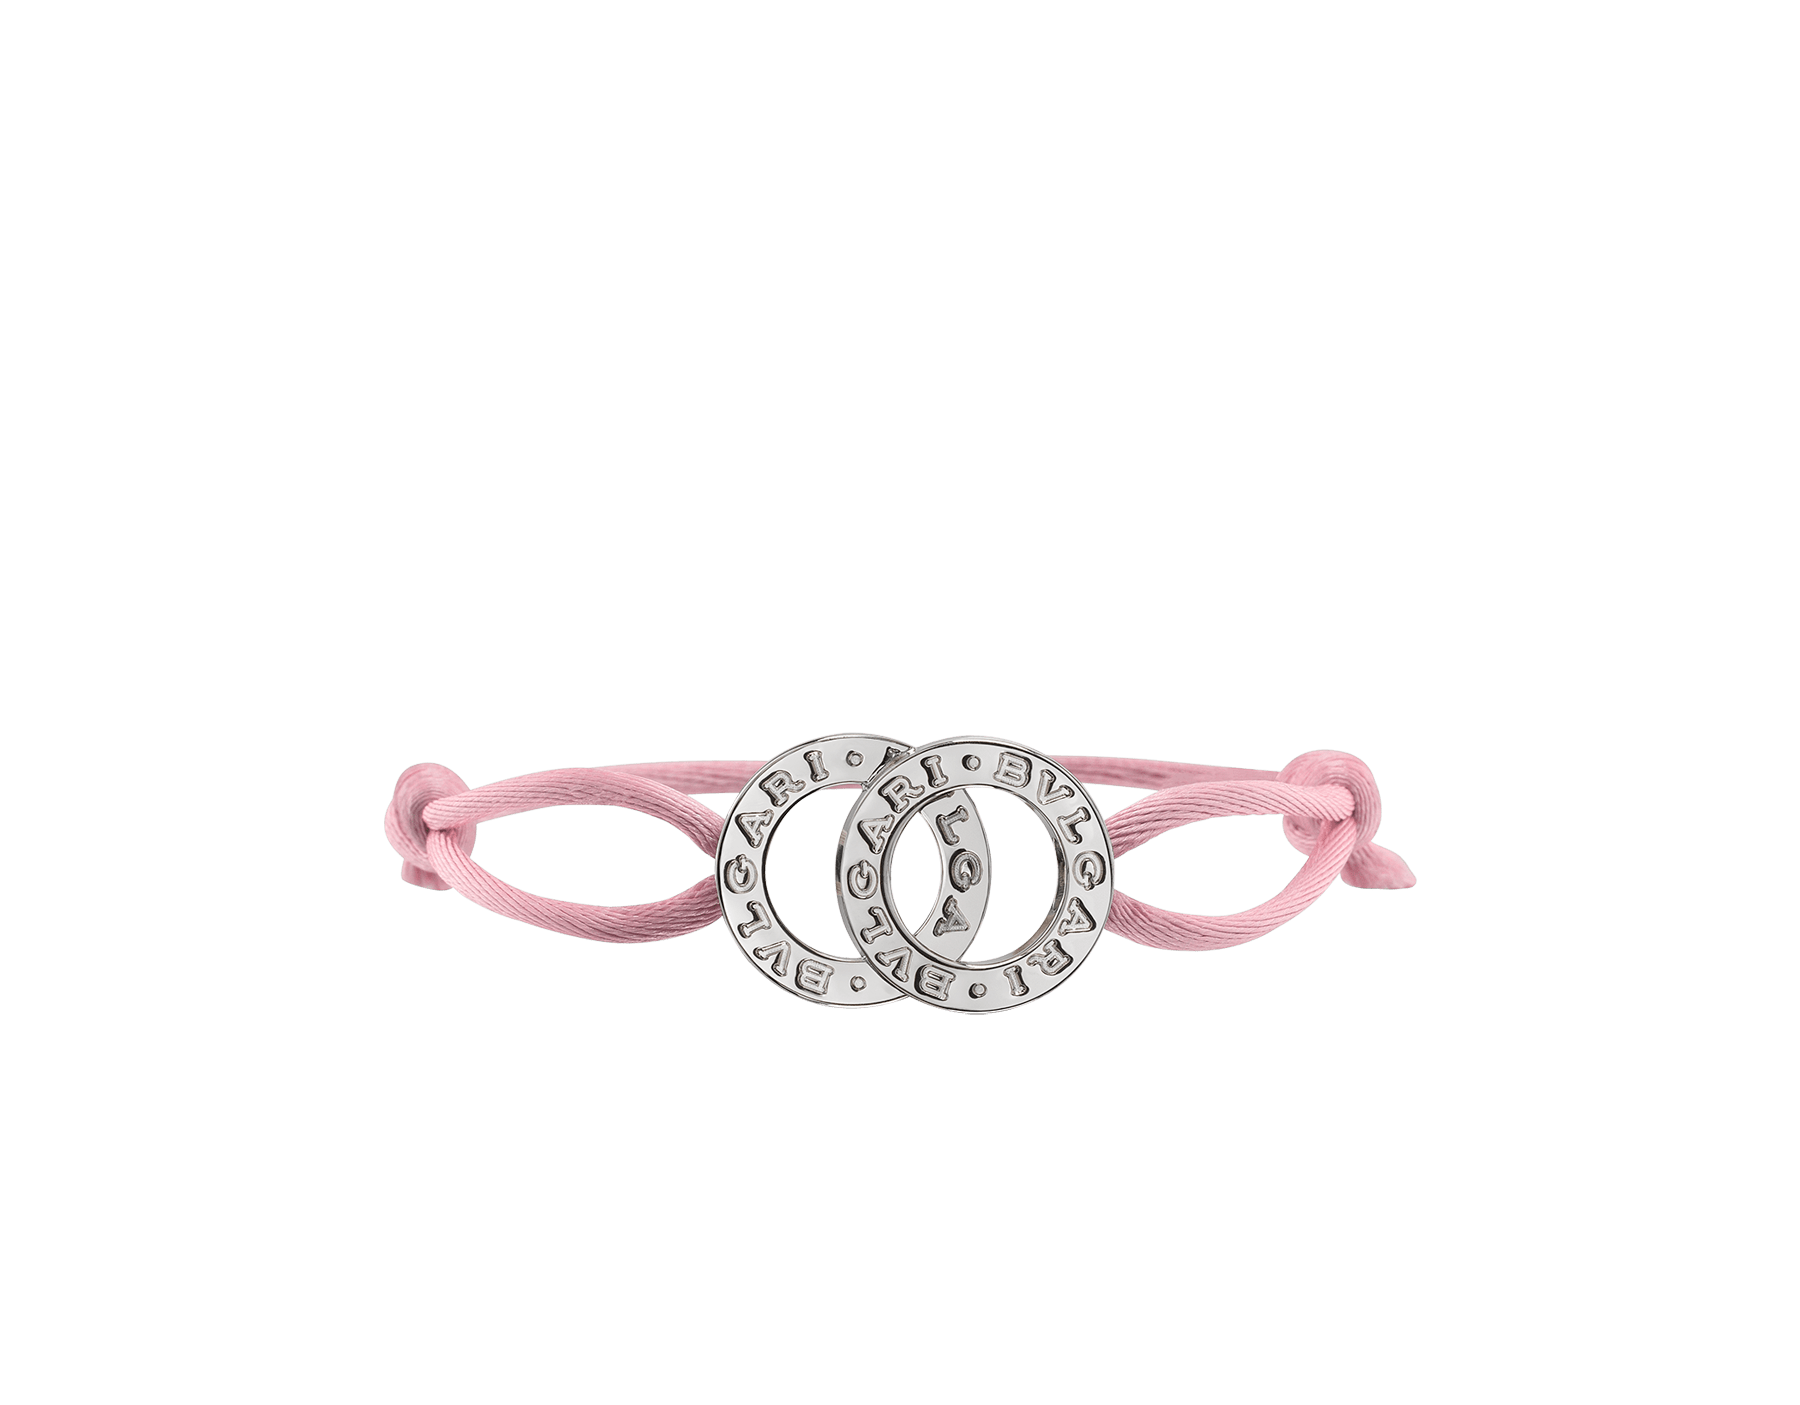 BVLGARI BVLGARI bracelet in flamingo quartz fabric with an iconic double logo décor in sterling silver. 288451 image 1